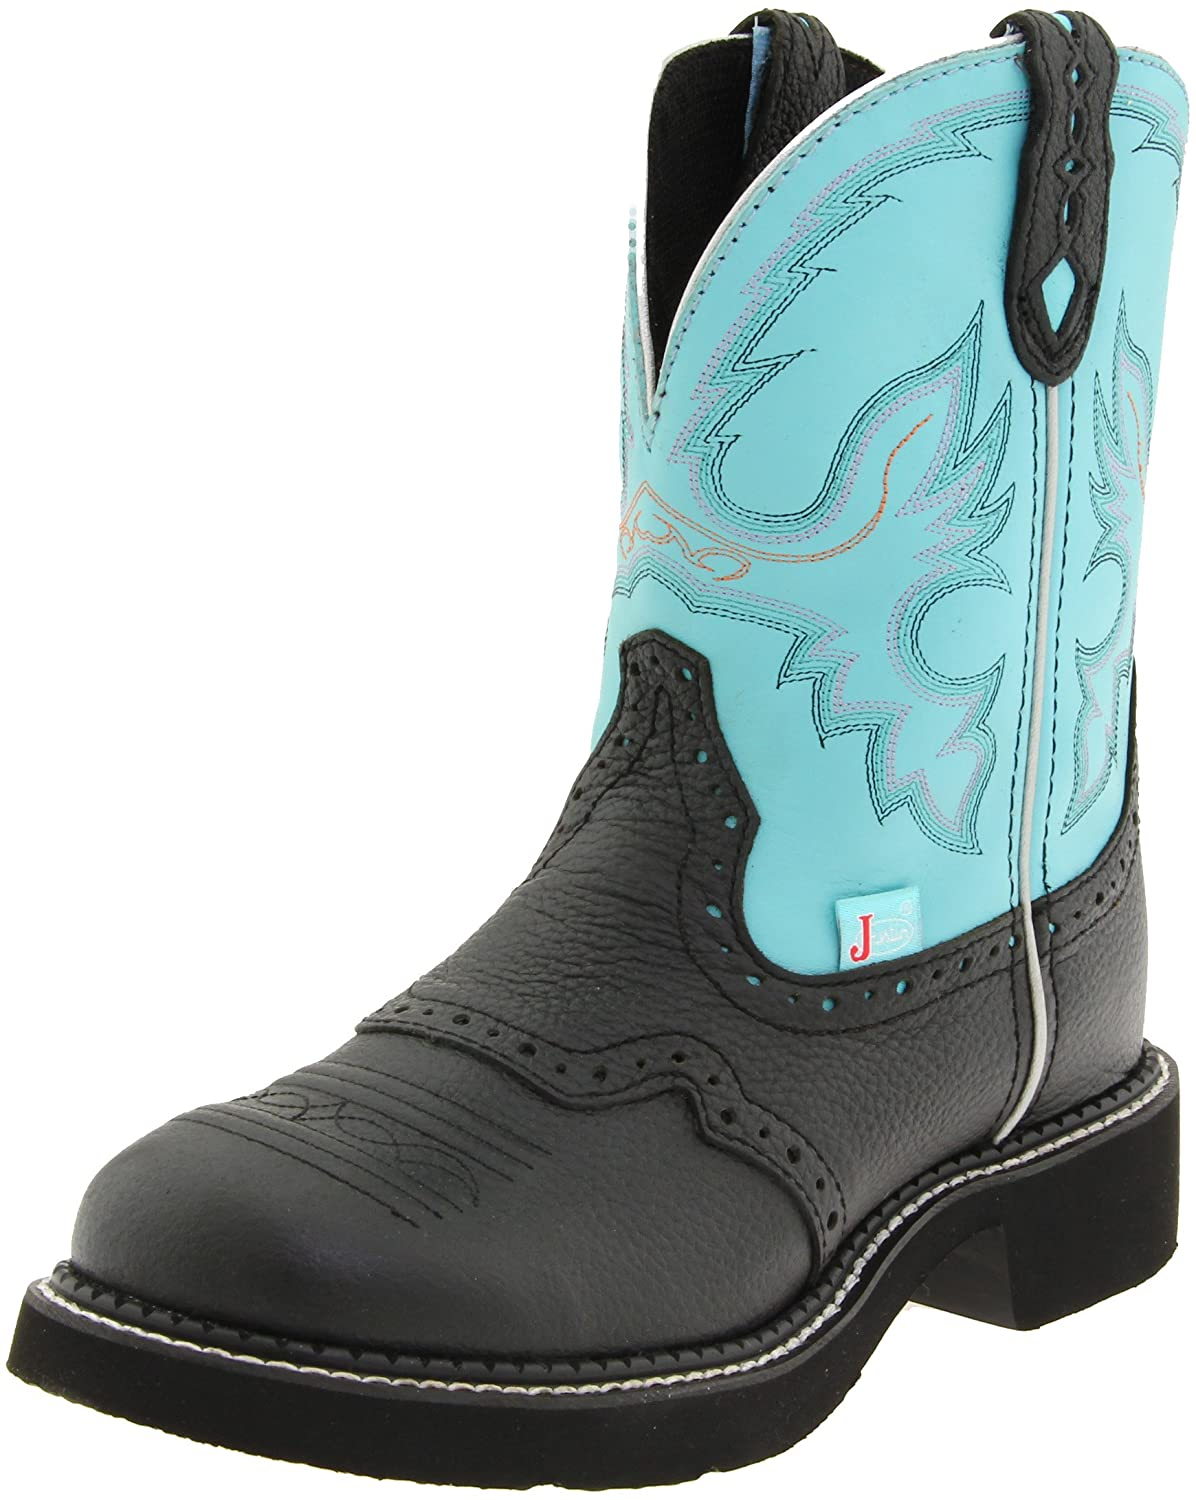 Justin Boots Women's Gypsy Collection Western Boot B000X42PG0 7.5 B(M) US|Black Deer Cow